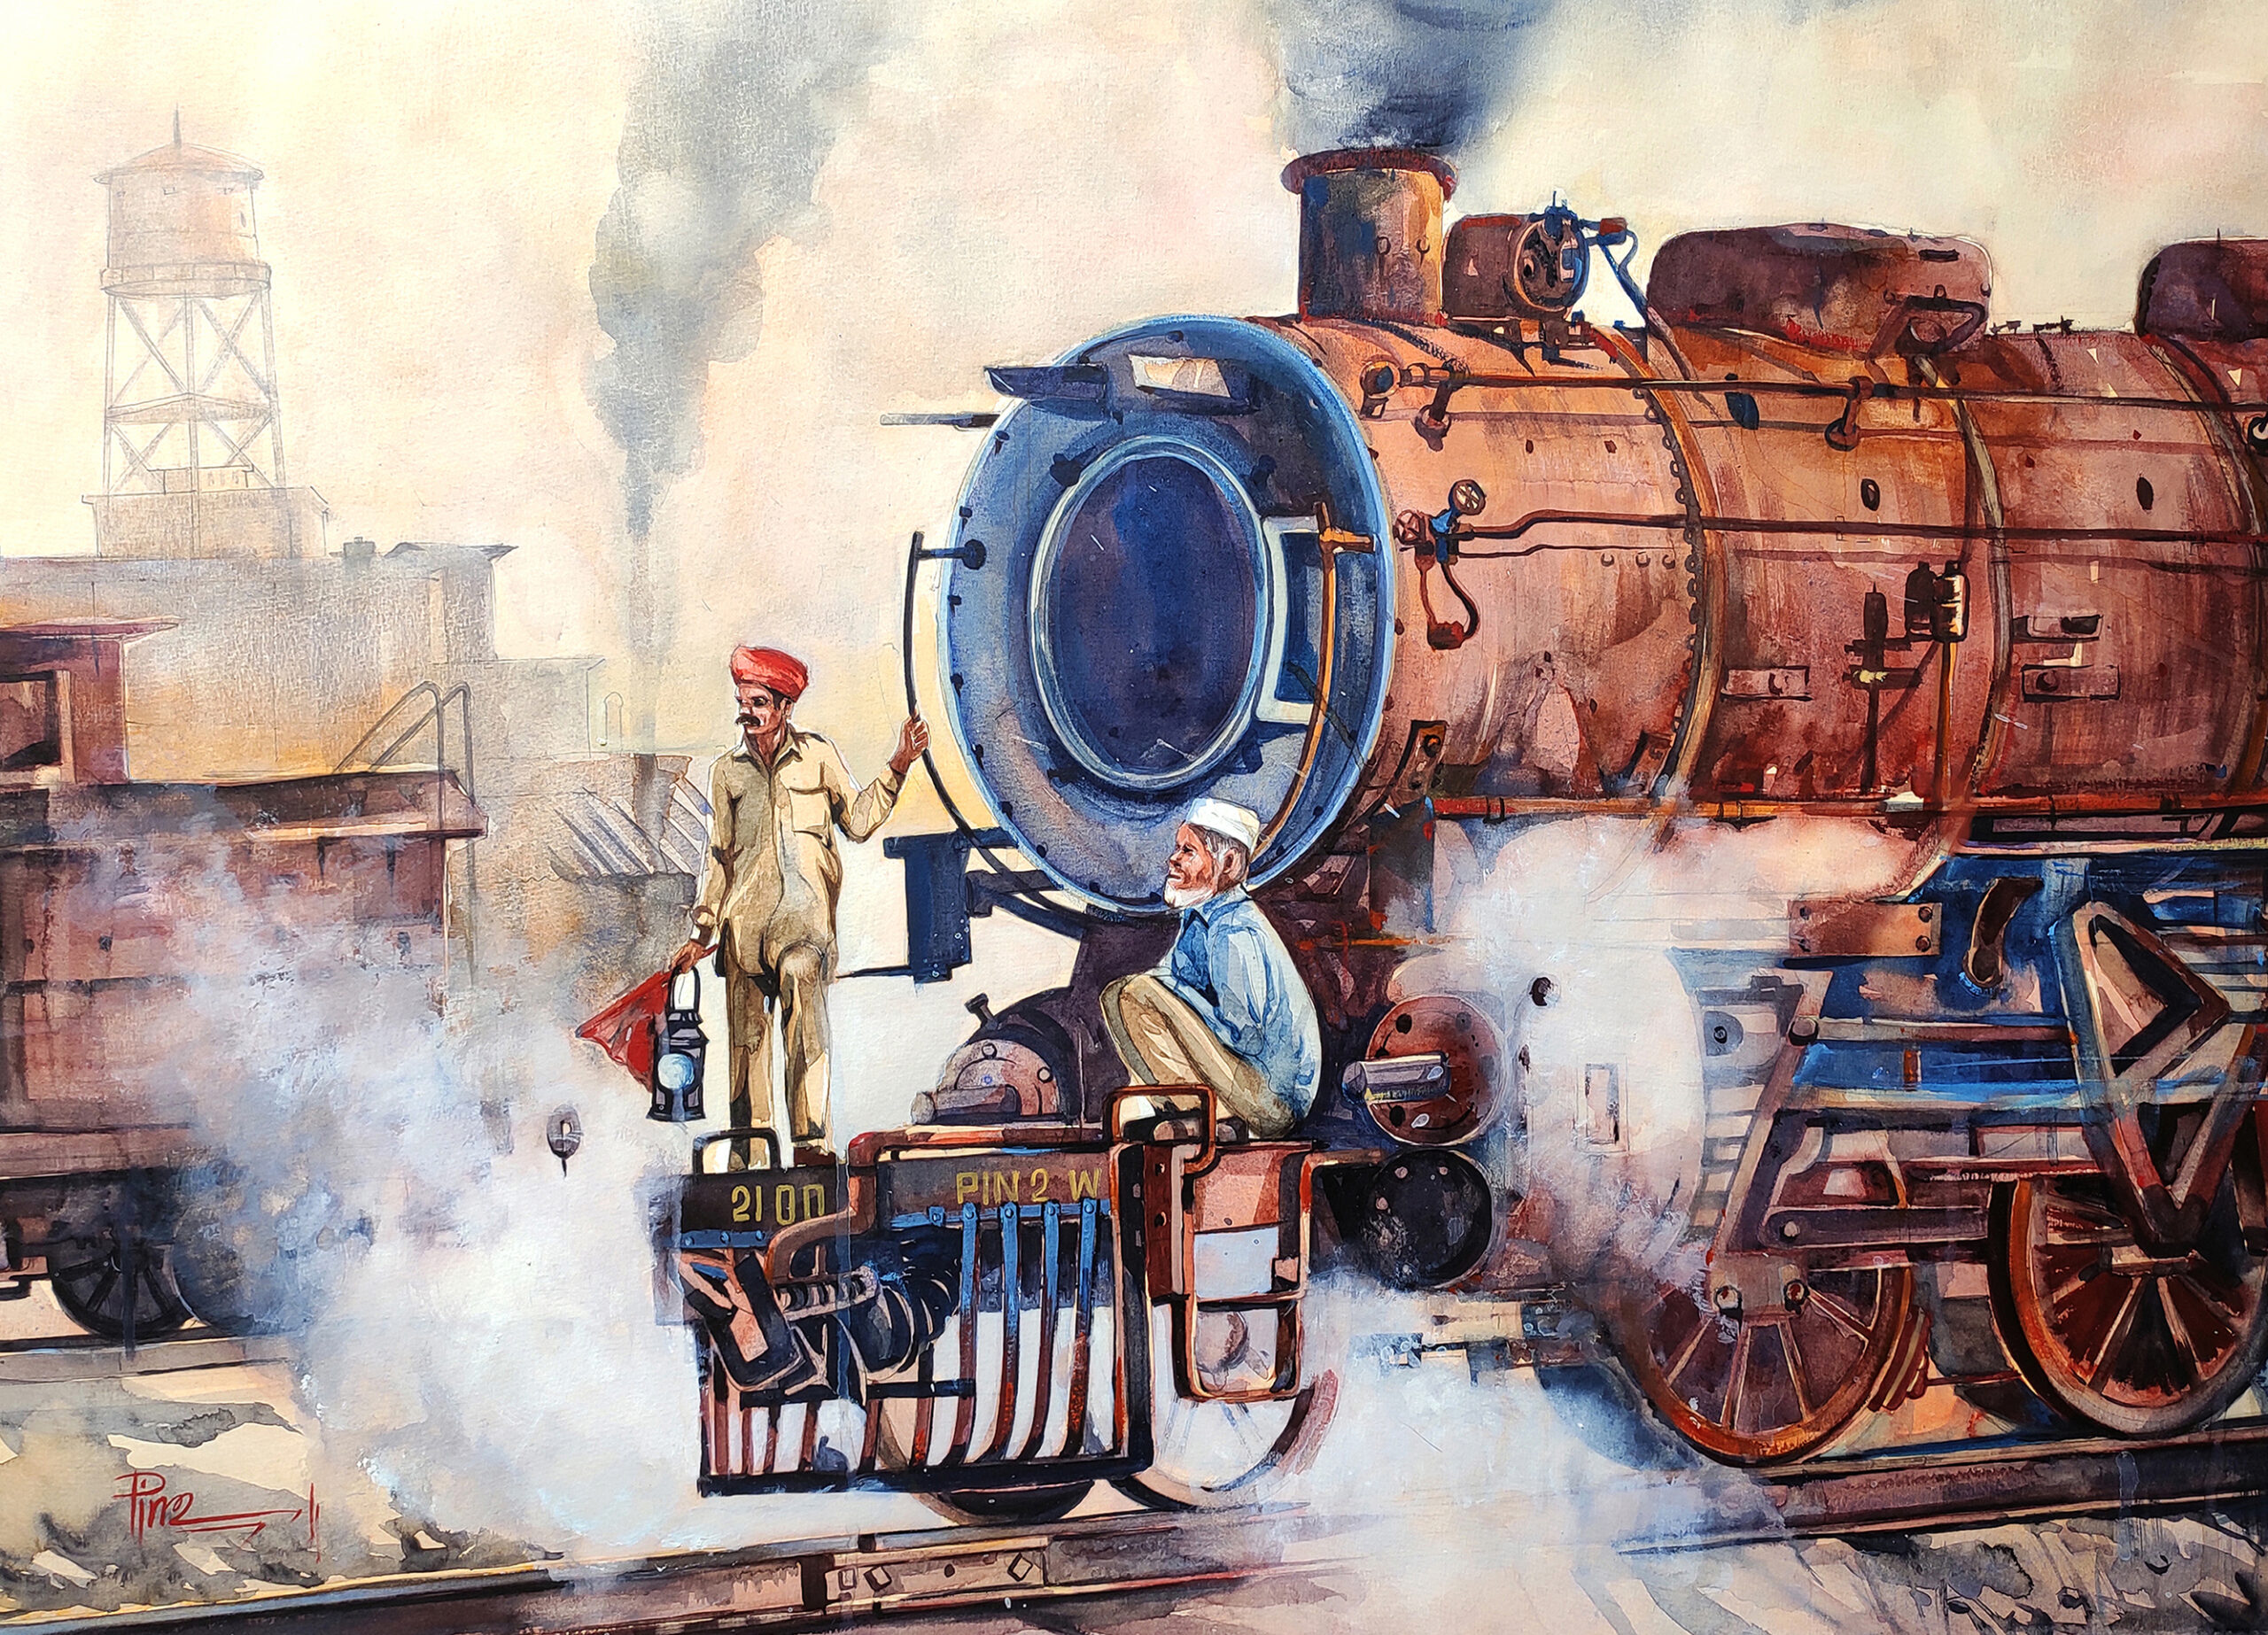 the-iron-giant-watercolor-on-paper-painting-by-pintu-sengupta-22x30